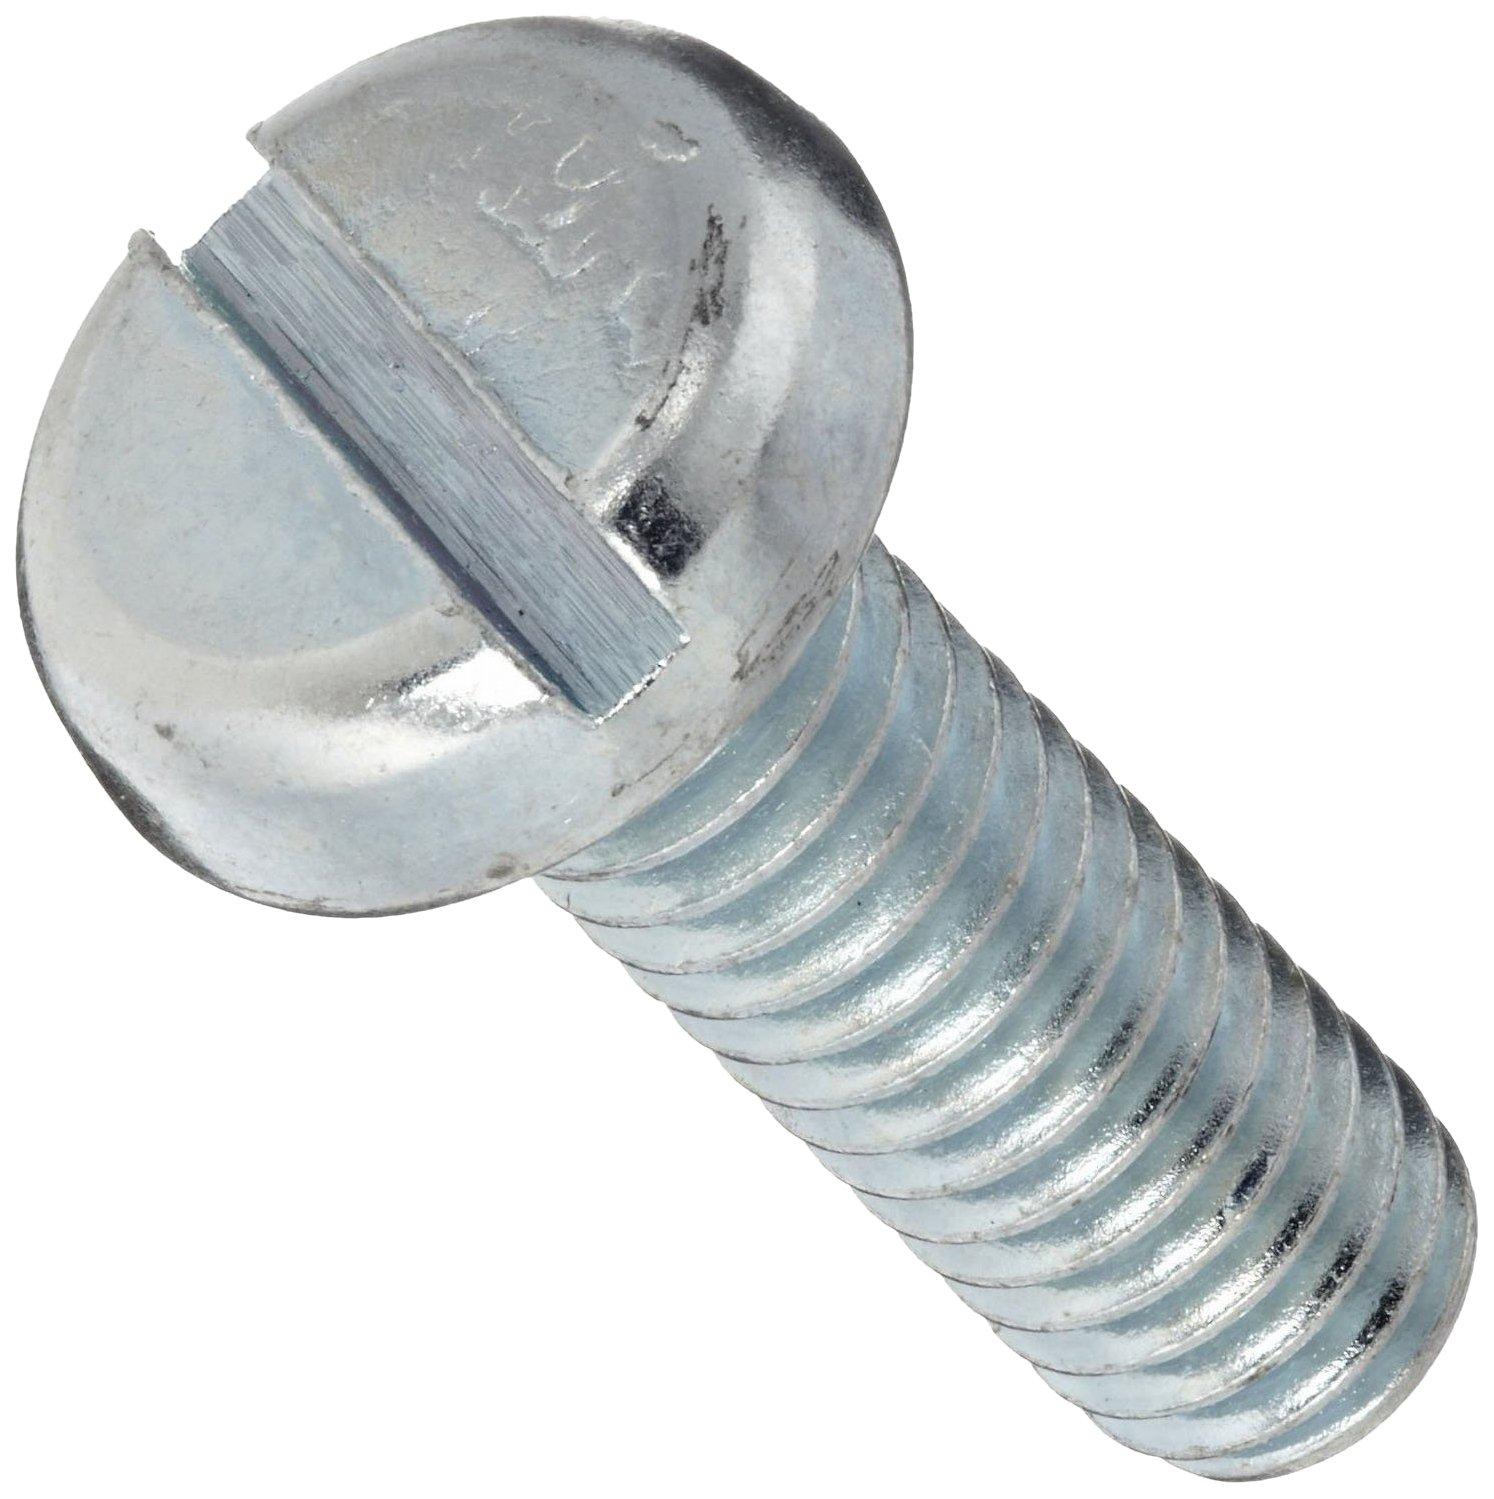 Steel Steel Pan Head Machine Screw, Zinc Plated, Meets ASME B18.6.3, Slotted Drive, 1/4'-20 Thread Size, 1/4' Length, Fully Threaded, Imported (Pack of 50)